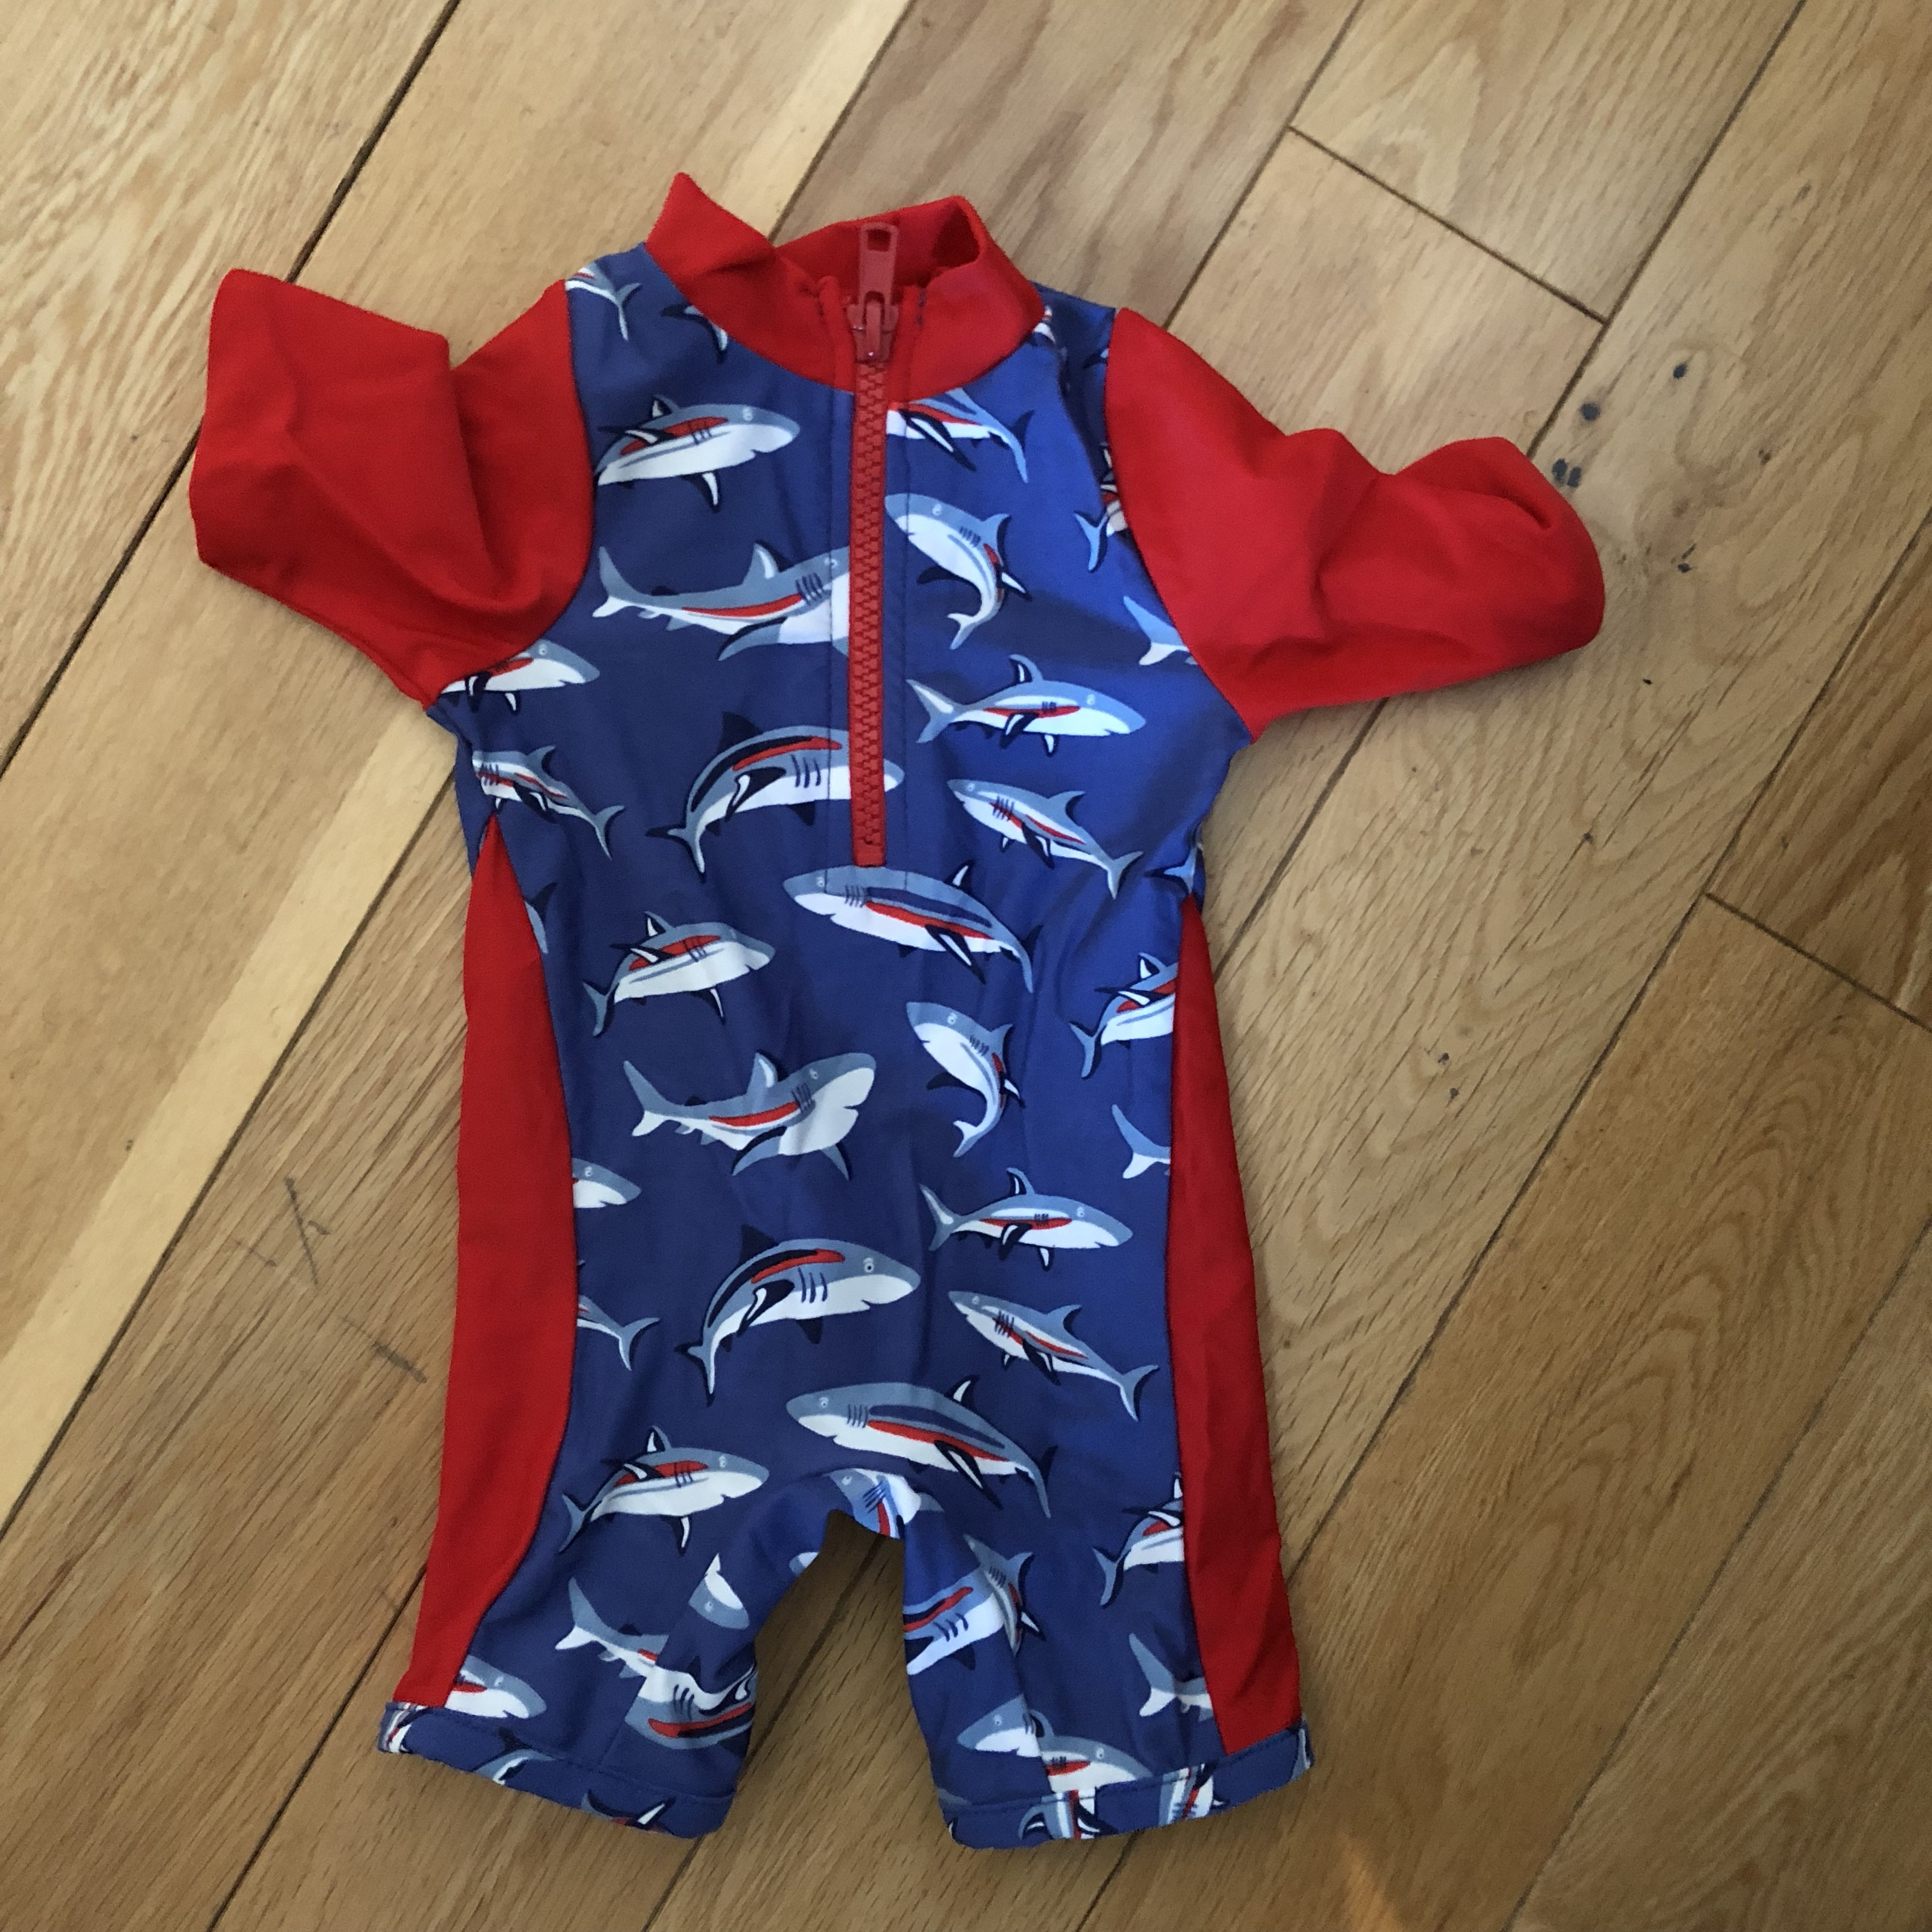 Cath kidston baby swimming suit all in one  Boys red    - Depop